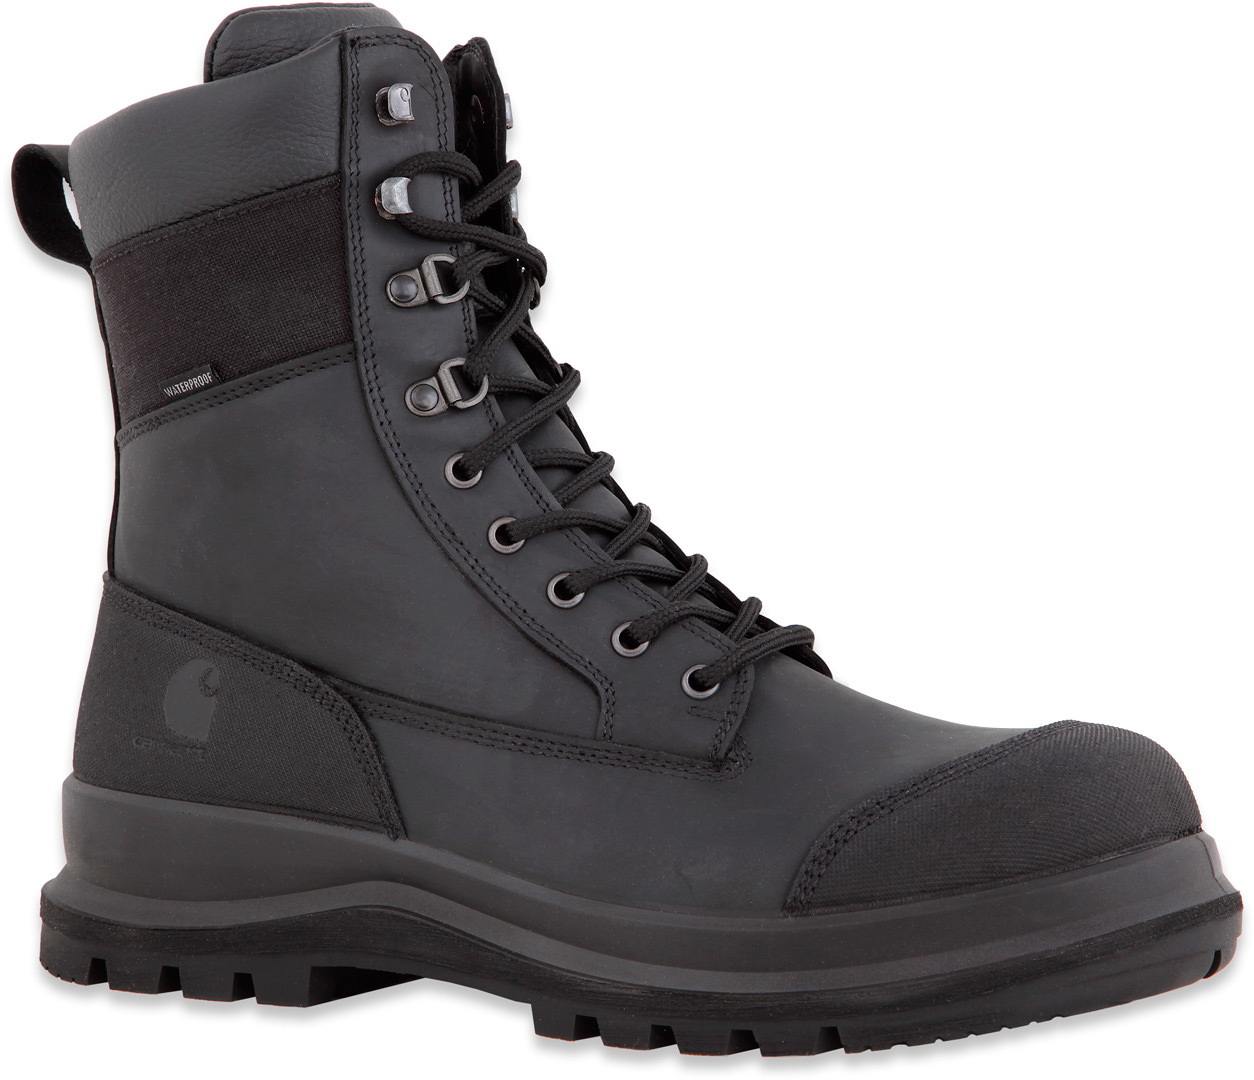 Carhartt Detroit Rugged Flex S3 High Stiefel Schwarz 39